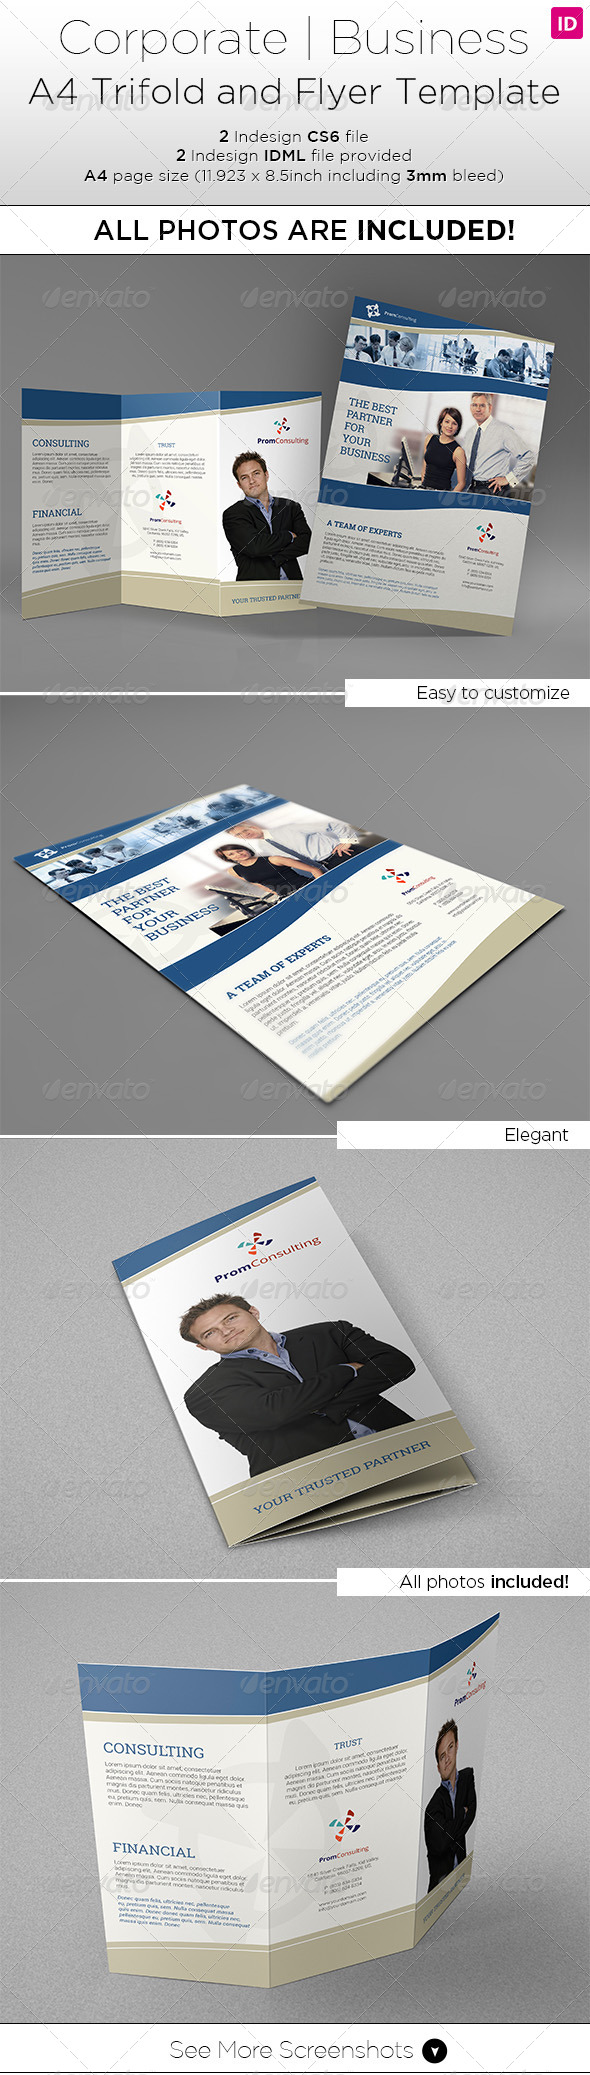 GraphicRiver A4 Trifold & Flyer Template All photos included 7931032